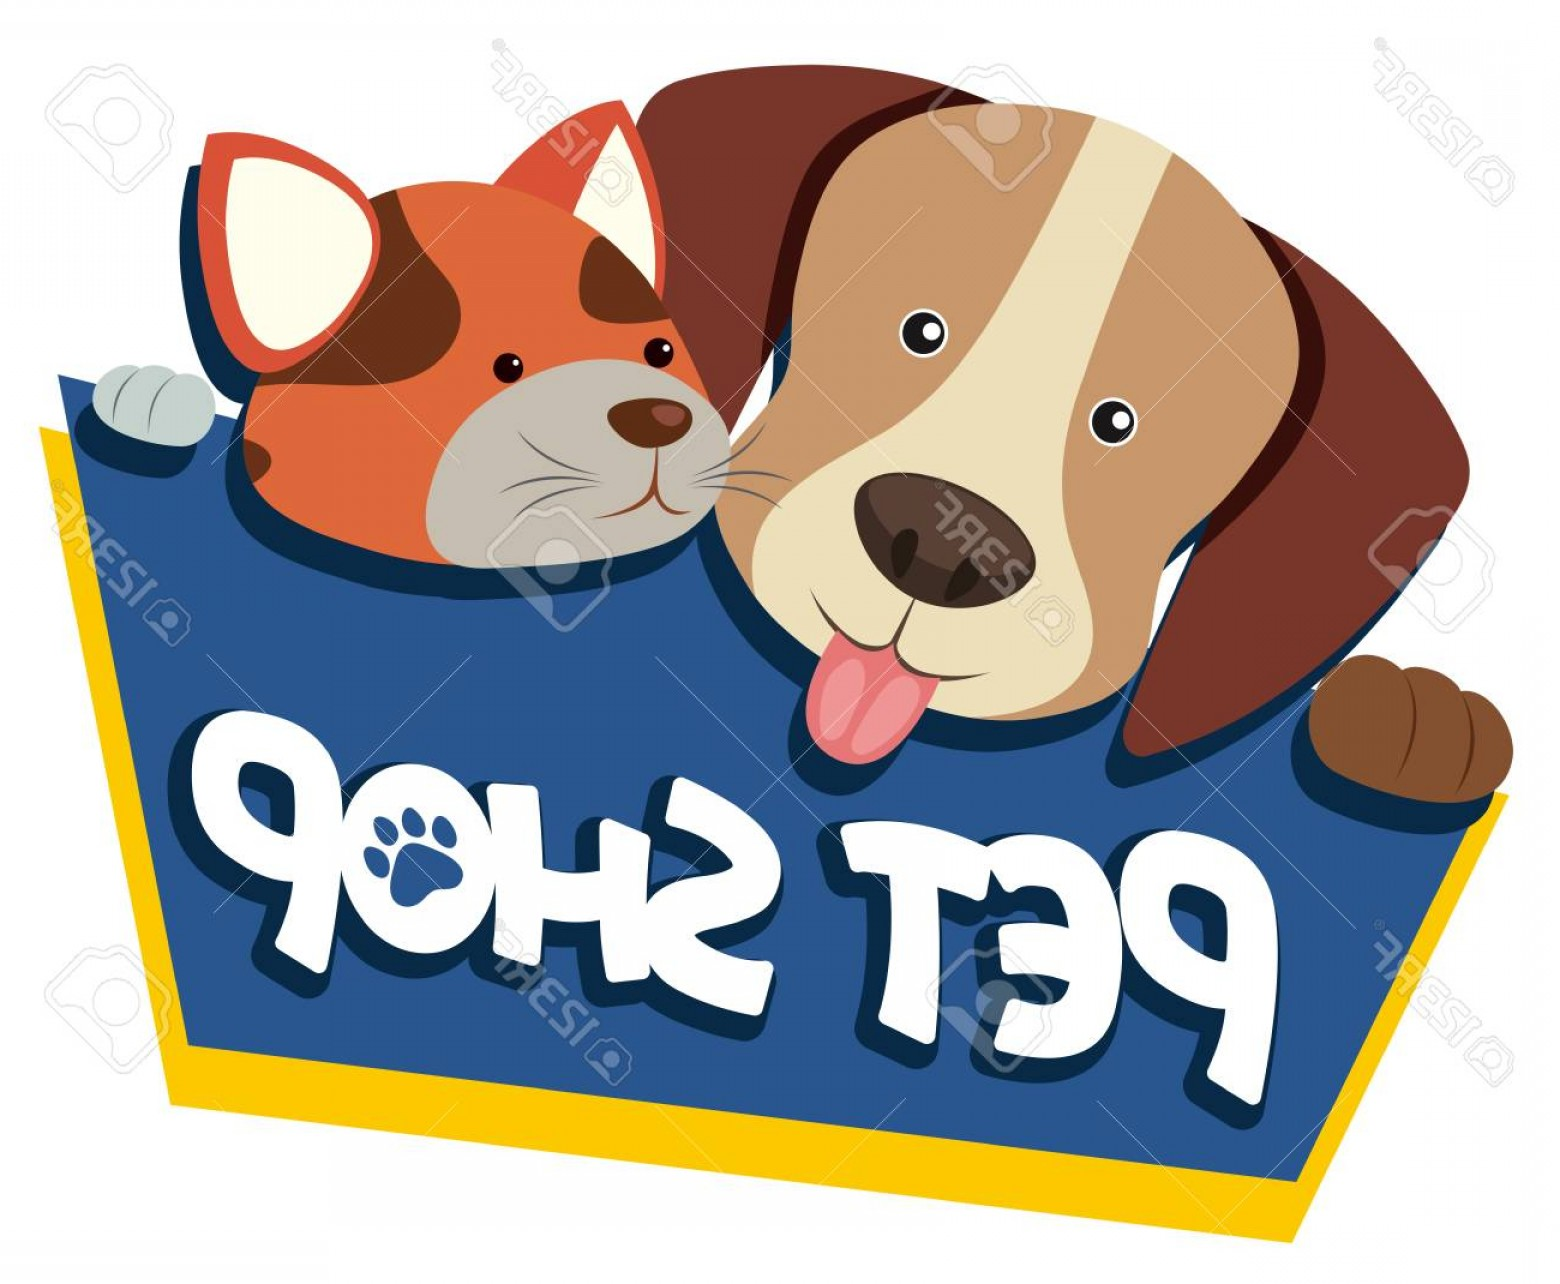 Dog And Cat Vector Illustration: Photostock Vector Pet Shop Sign With Cute Dog And Cat Vector Illustration